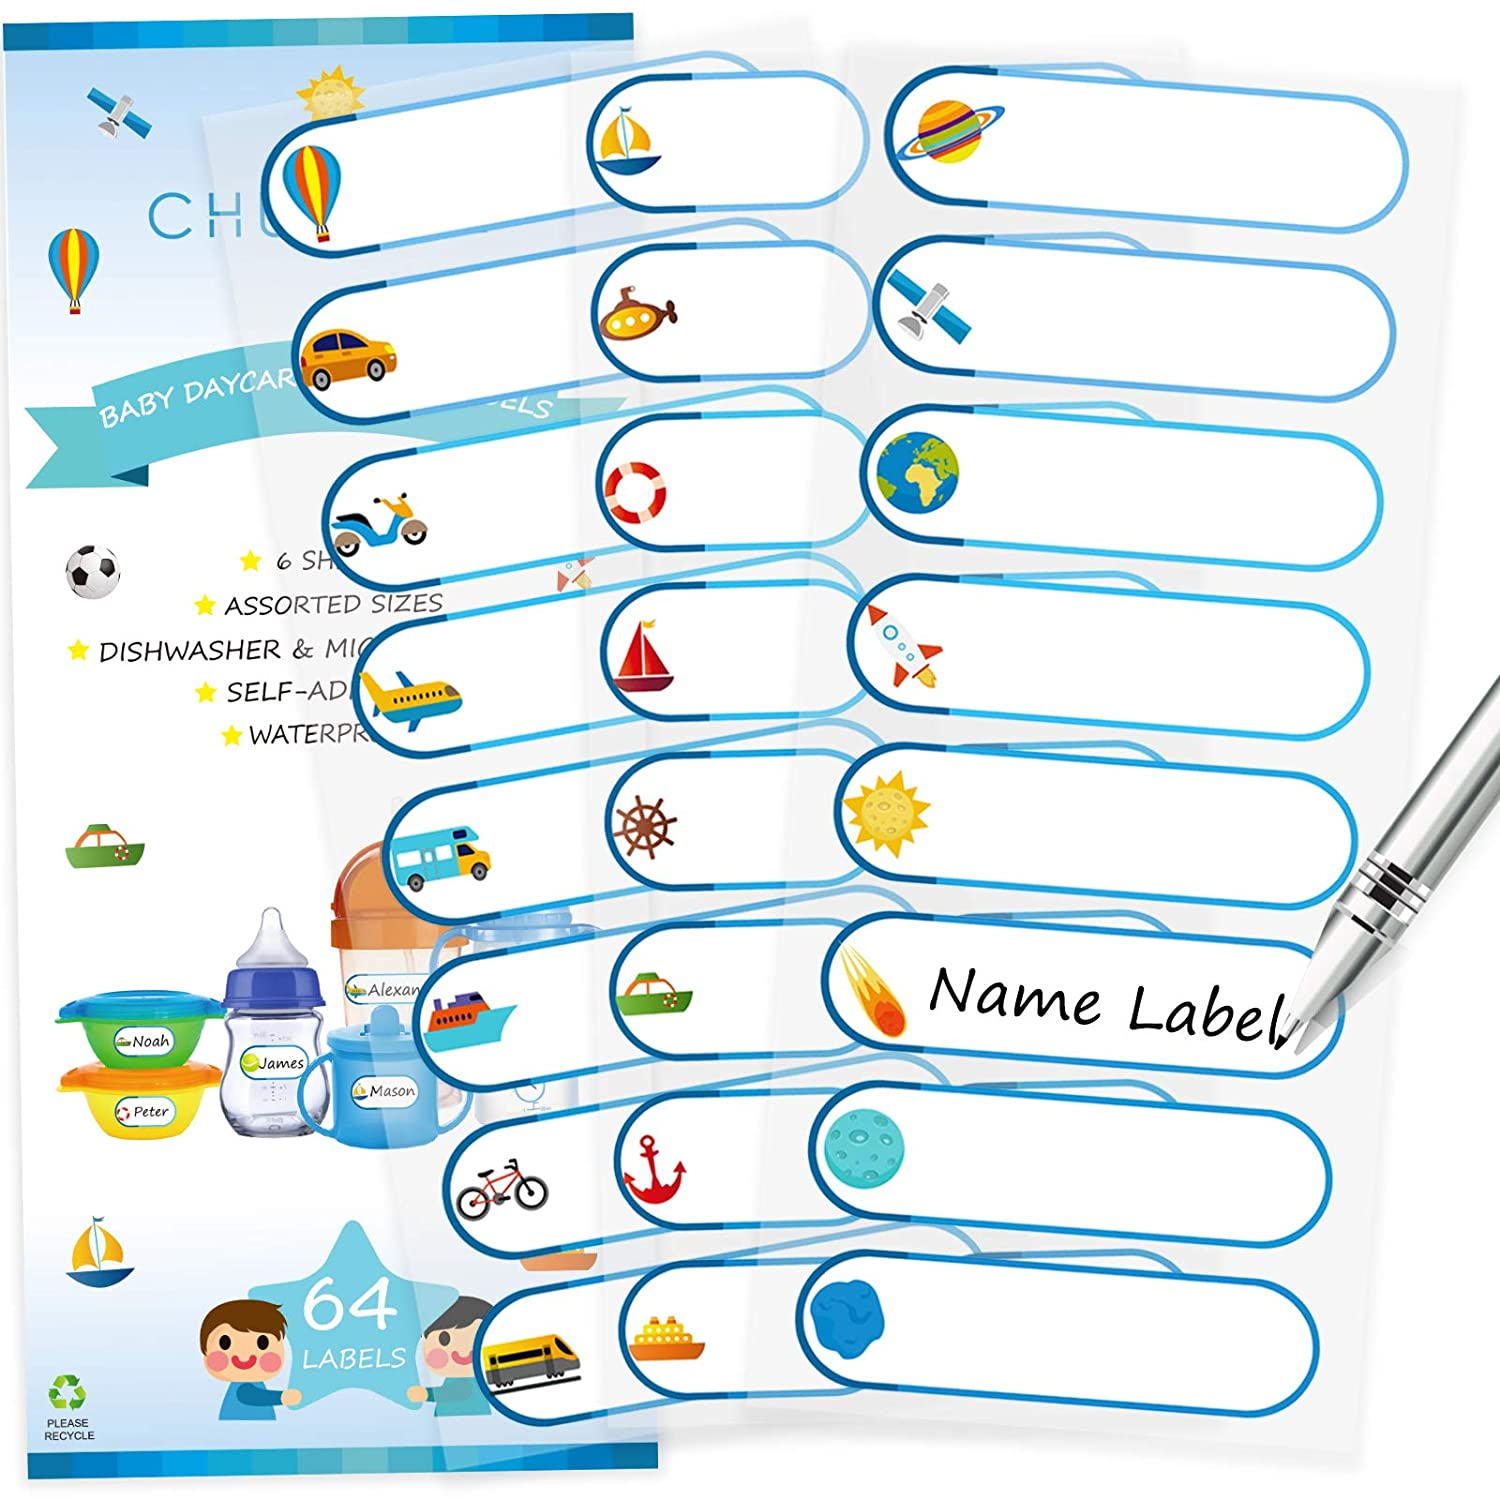 CHUBBIEE Baby Bottle Labels for Daycare, Assorted Sizes/Colors, 96 Pack